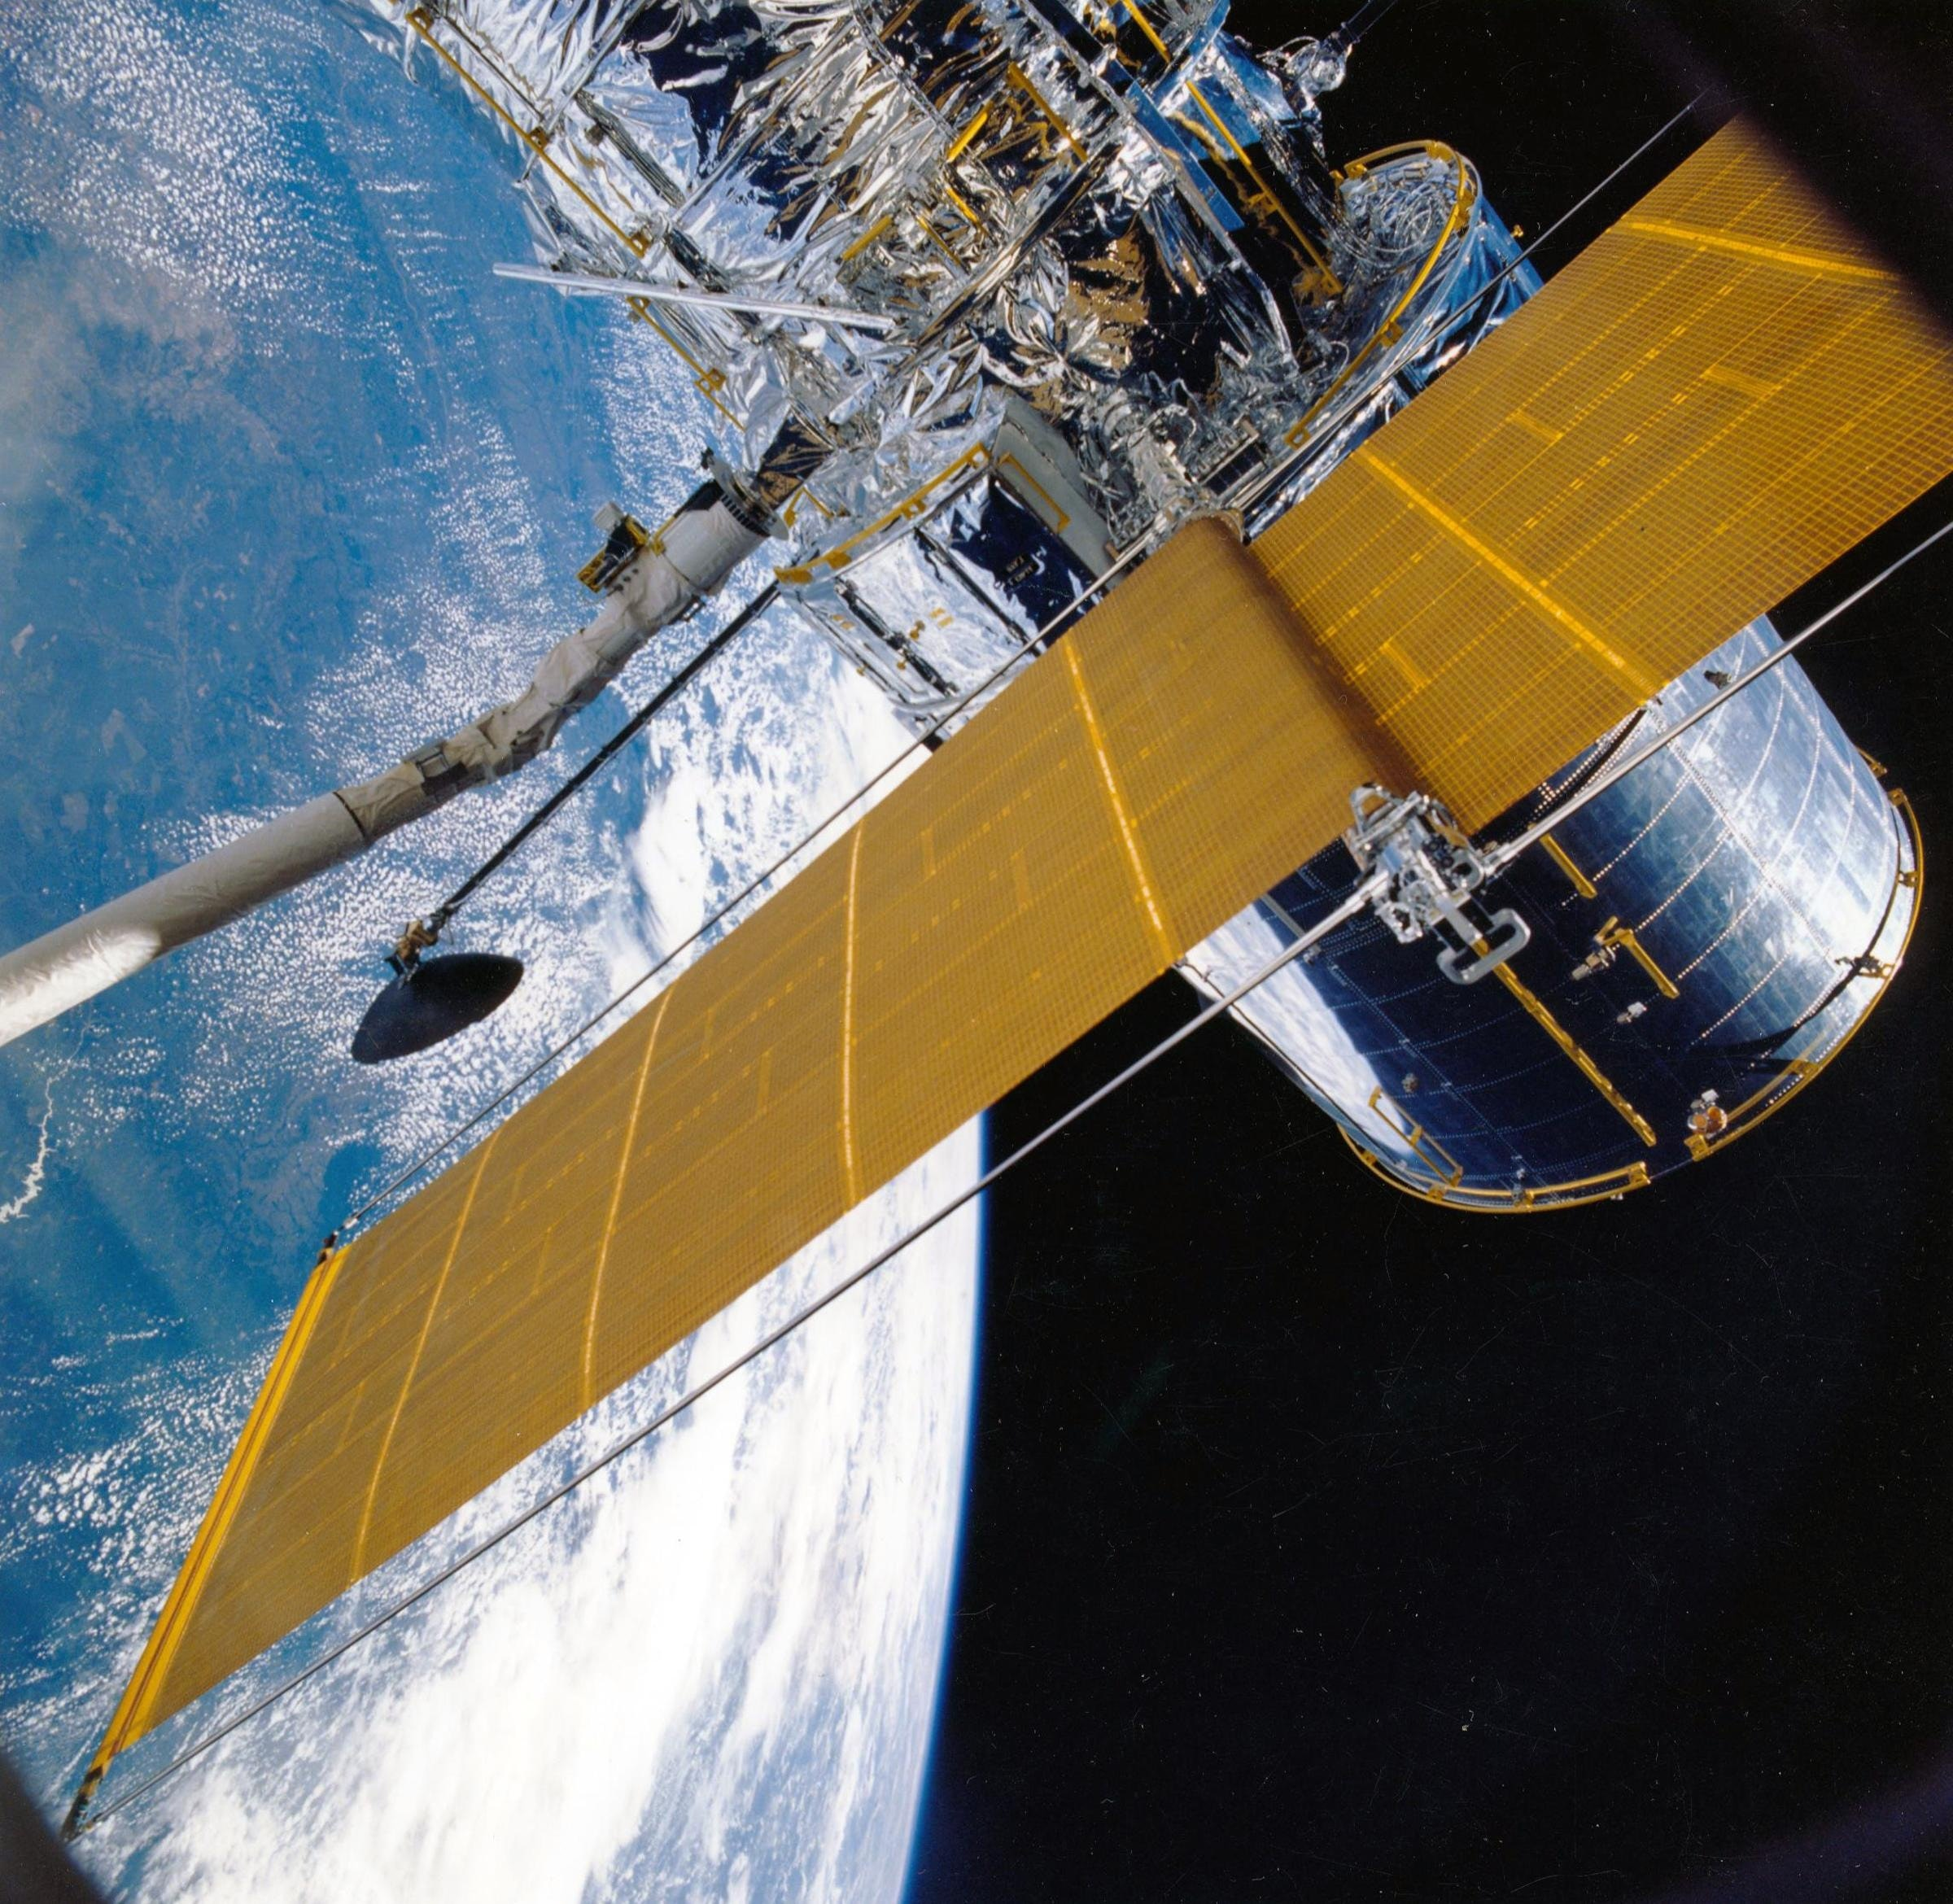 Scotland's space and aerospace industry information - SDI